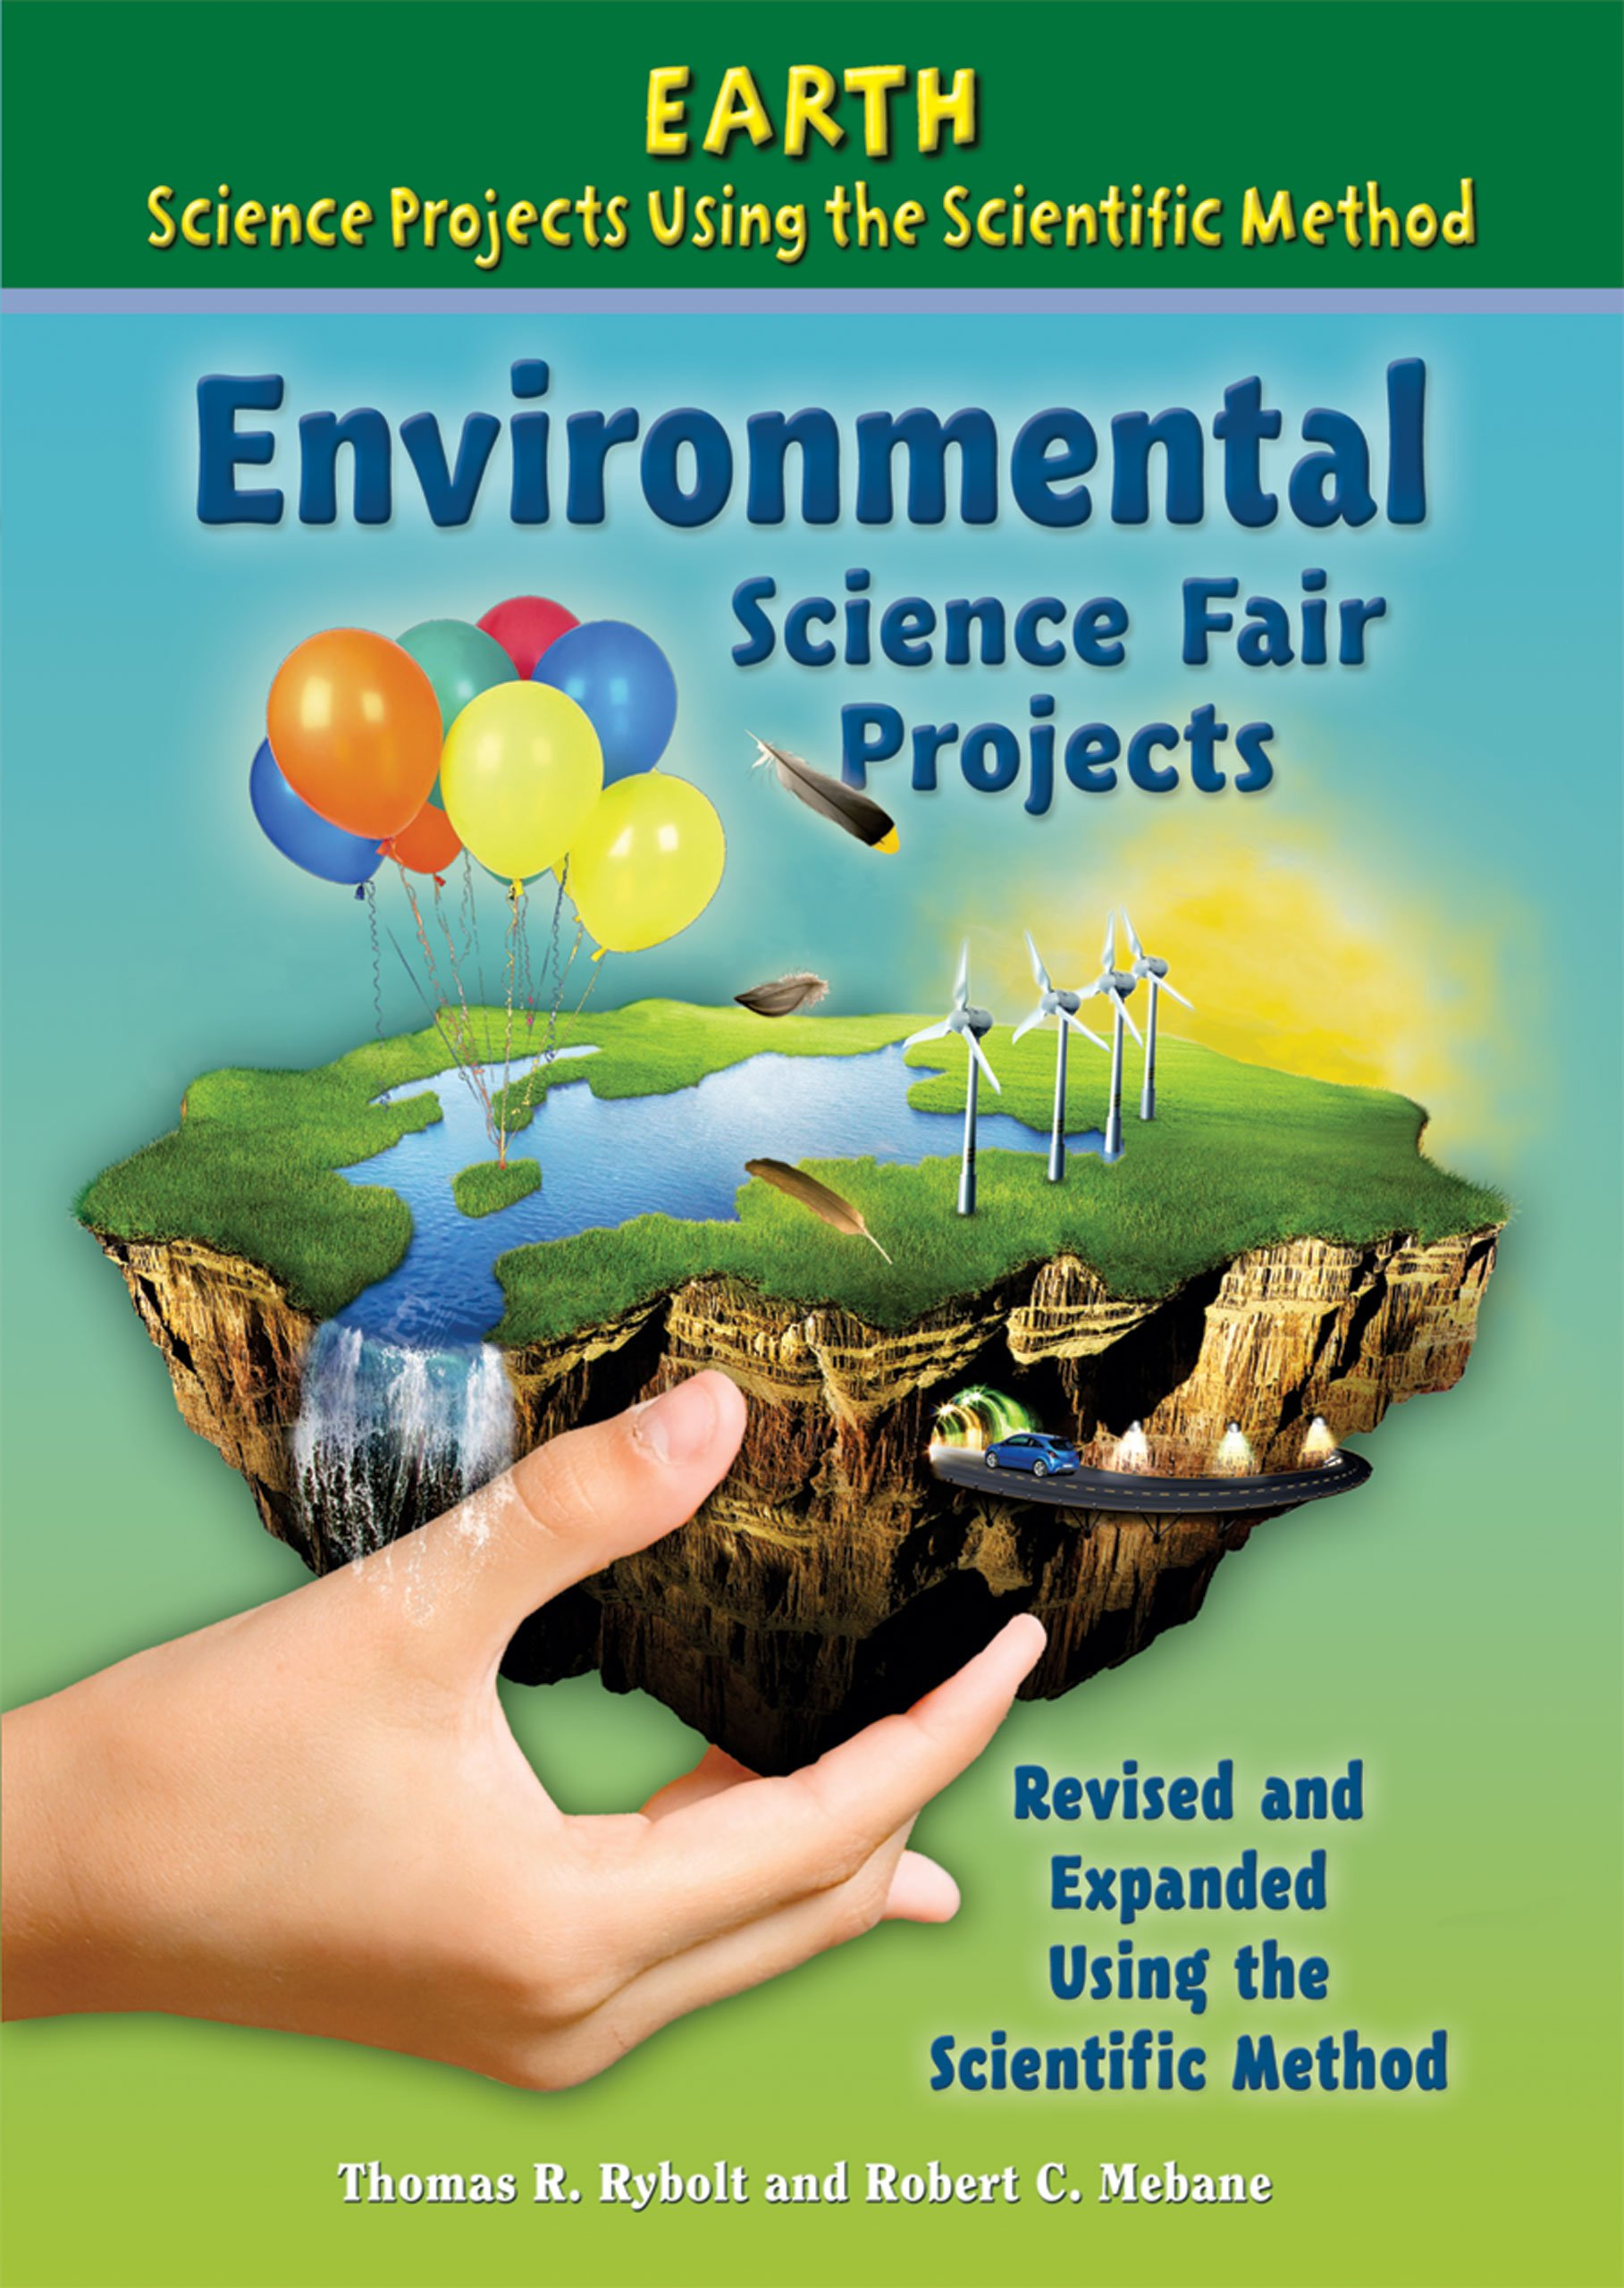 project on environmental science Dr helmenstine holds a phd in biomedical sciences and is a science writer, educator, and consultant she has taught science courses at the high school, college, and graduate levels updated june 18, 2018 are you interested in doing a science fair project that involves the environment, ecology.